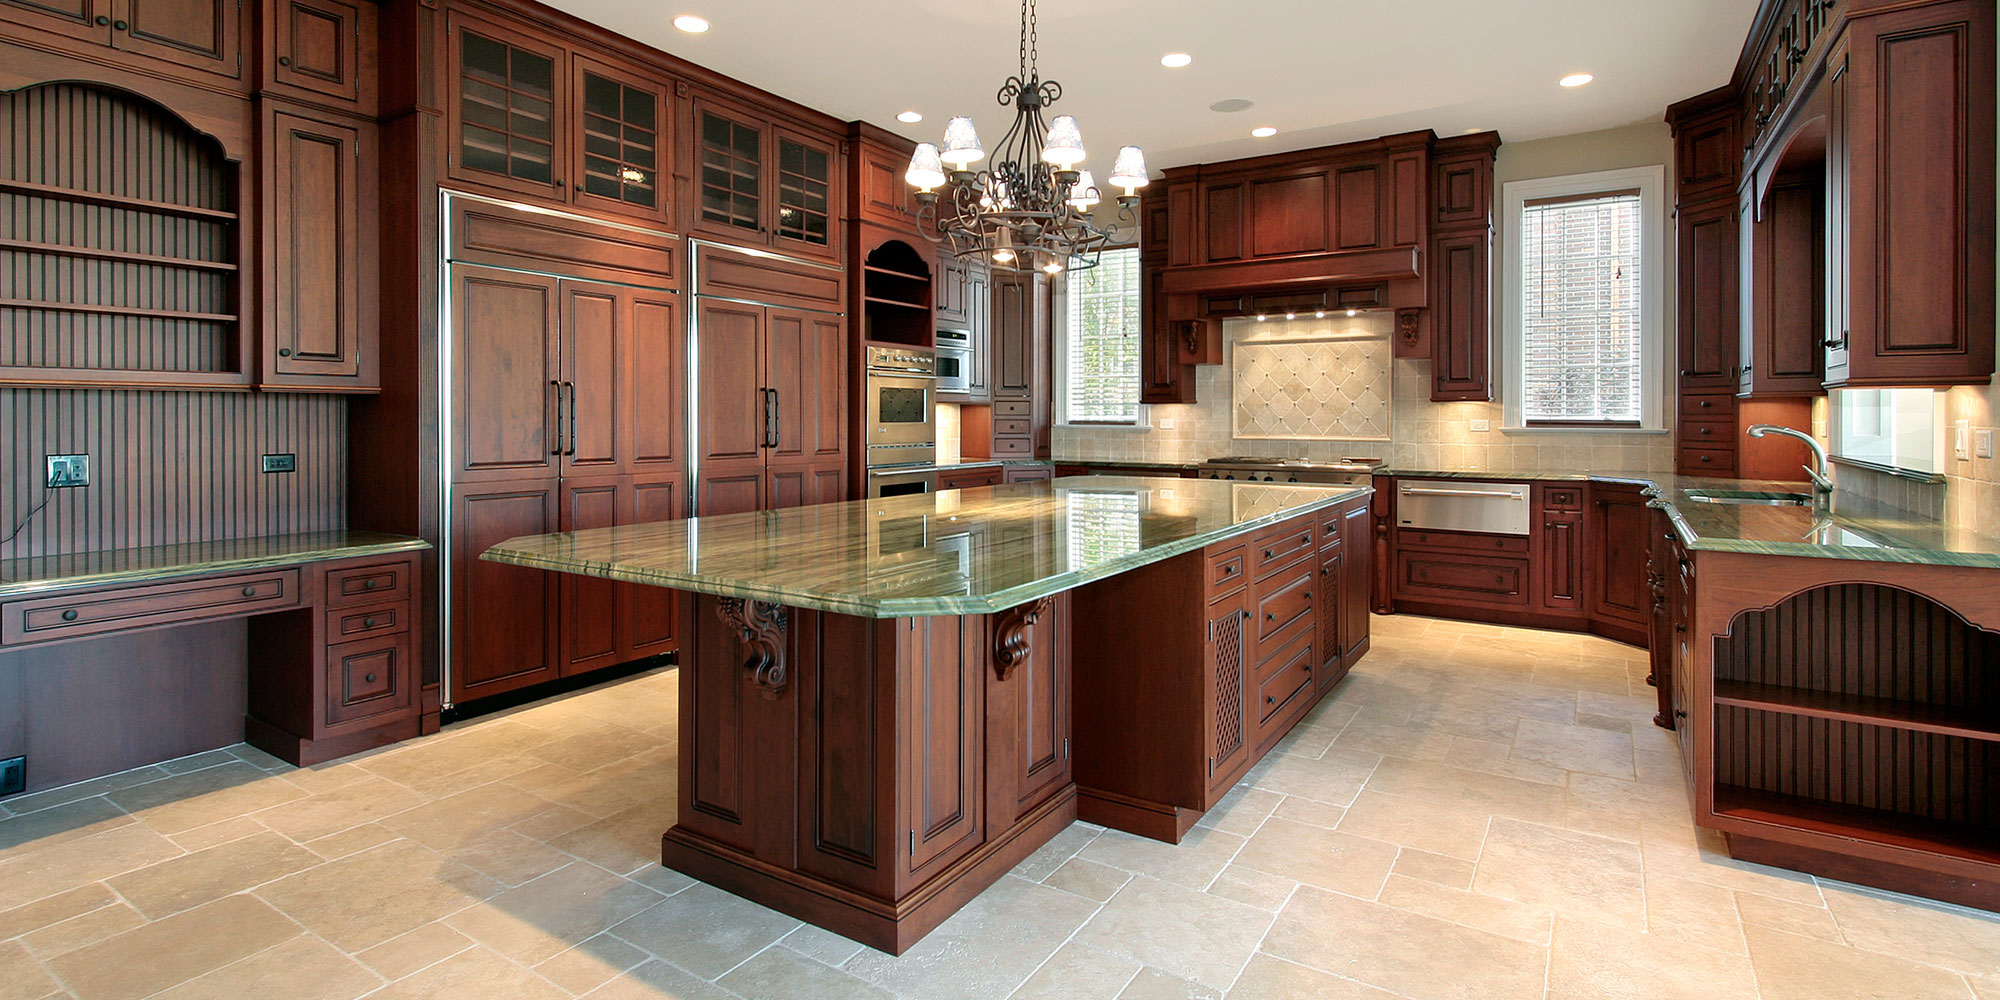 HTI Granite & Cabinetry | Kitchen Cabinets Denver | Granite ...